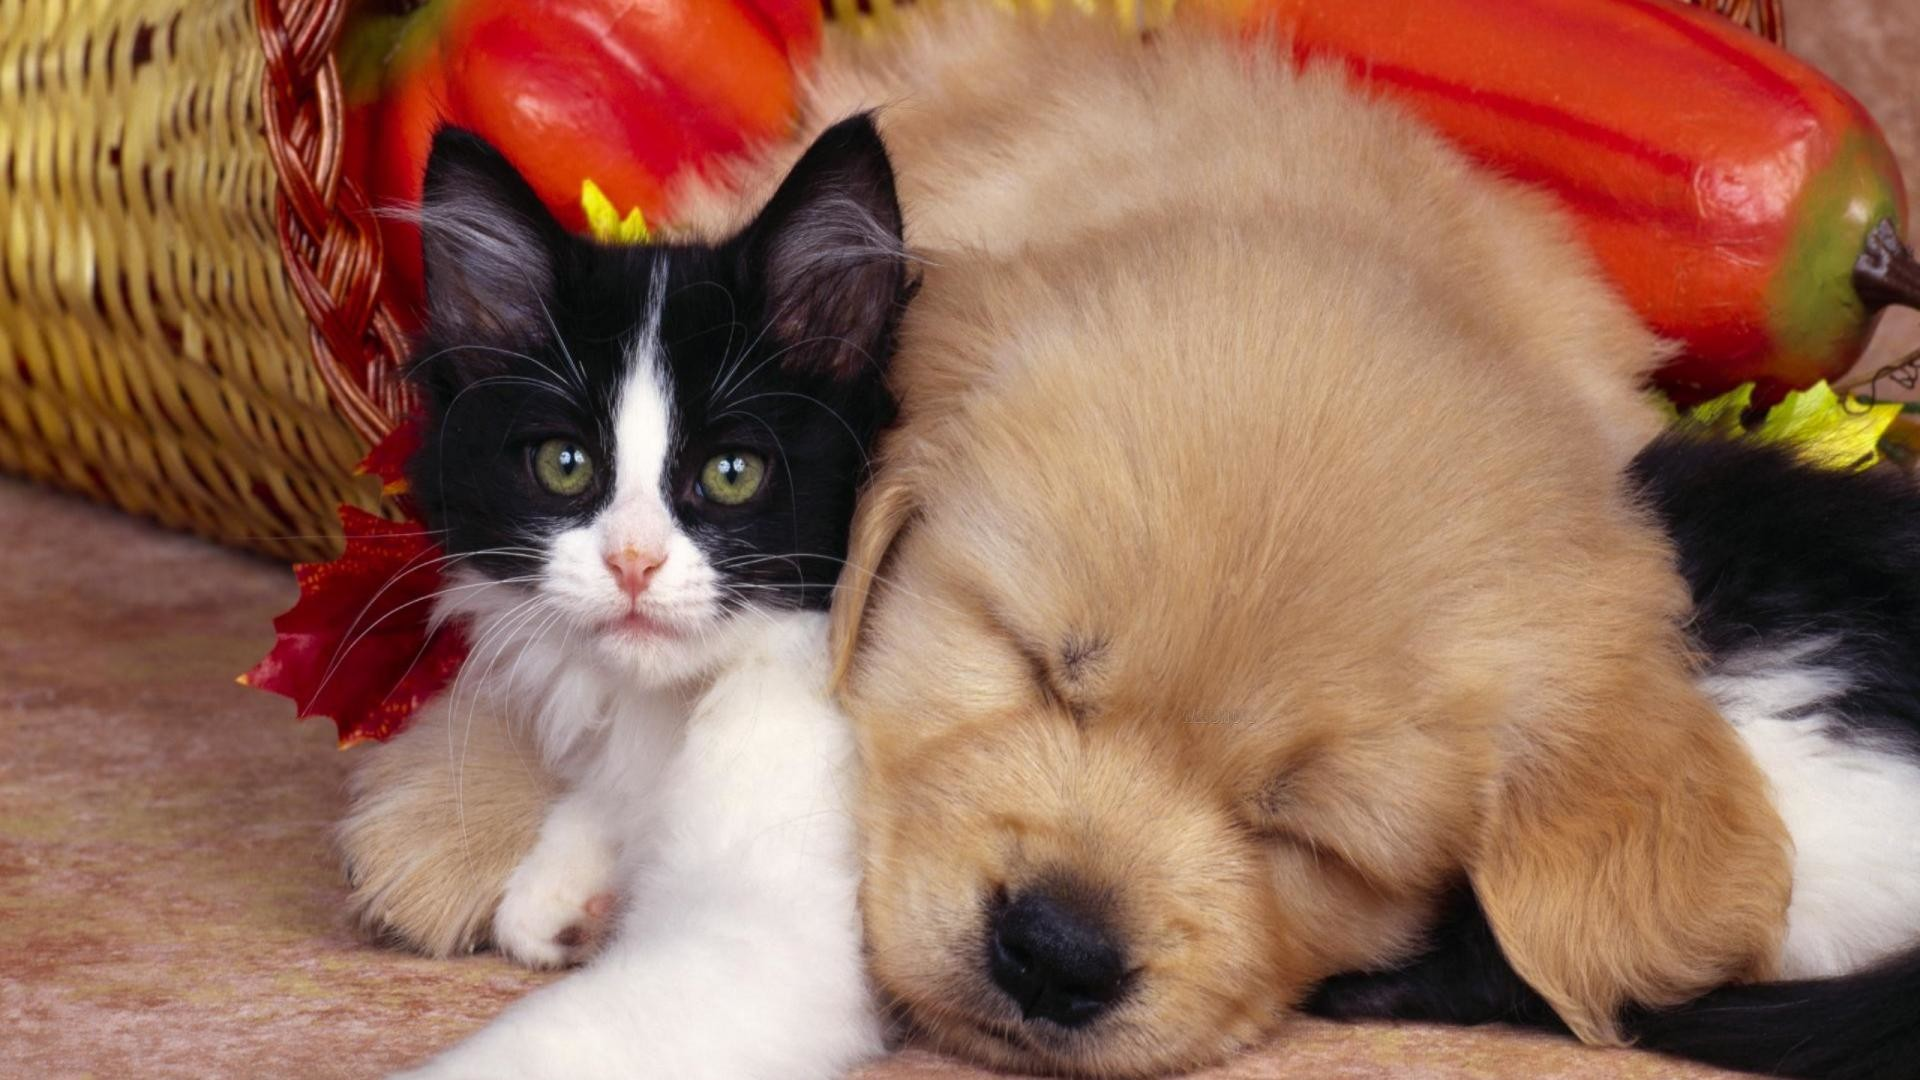 Puppies and kittens wallpaper wallpapertag - Kitten backgrounds ...